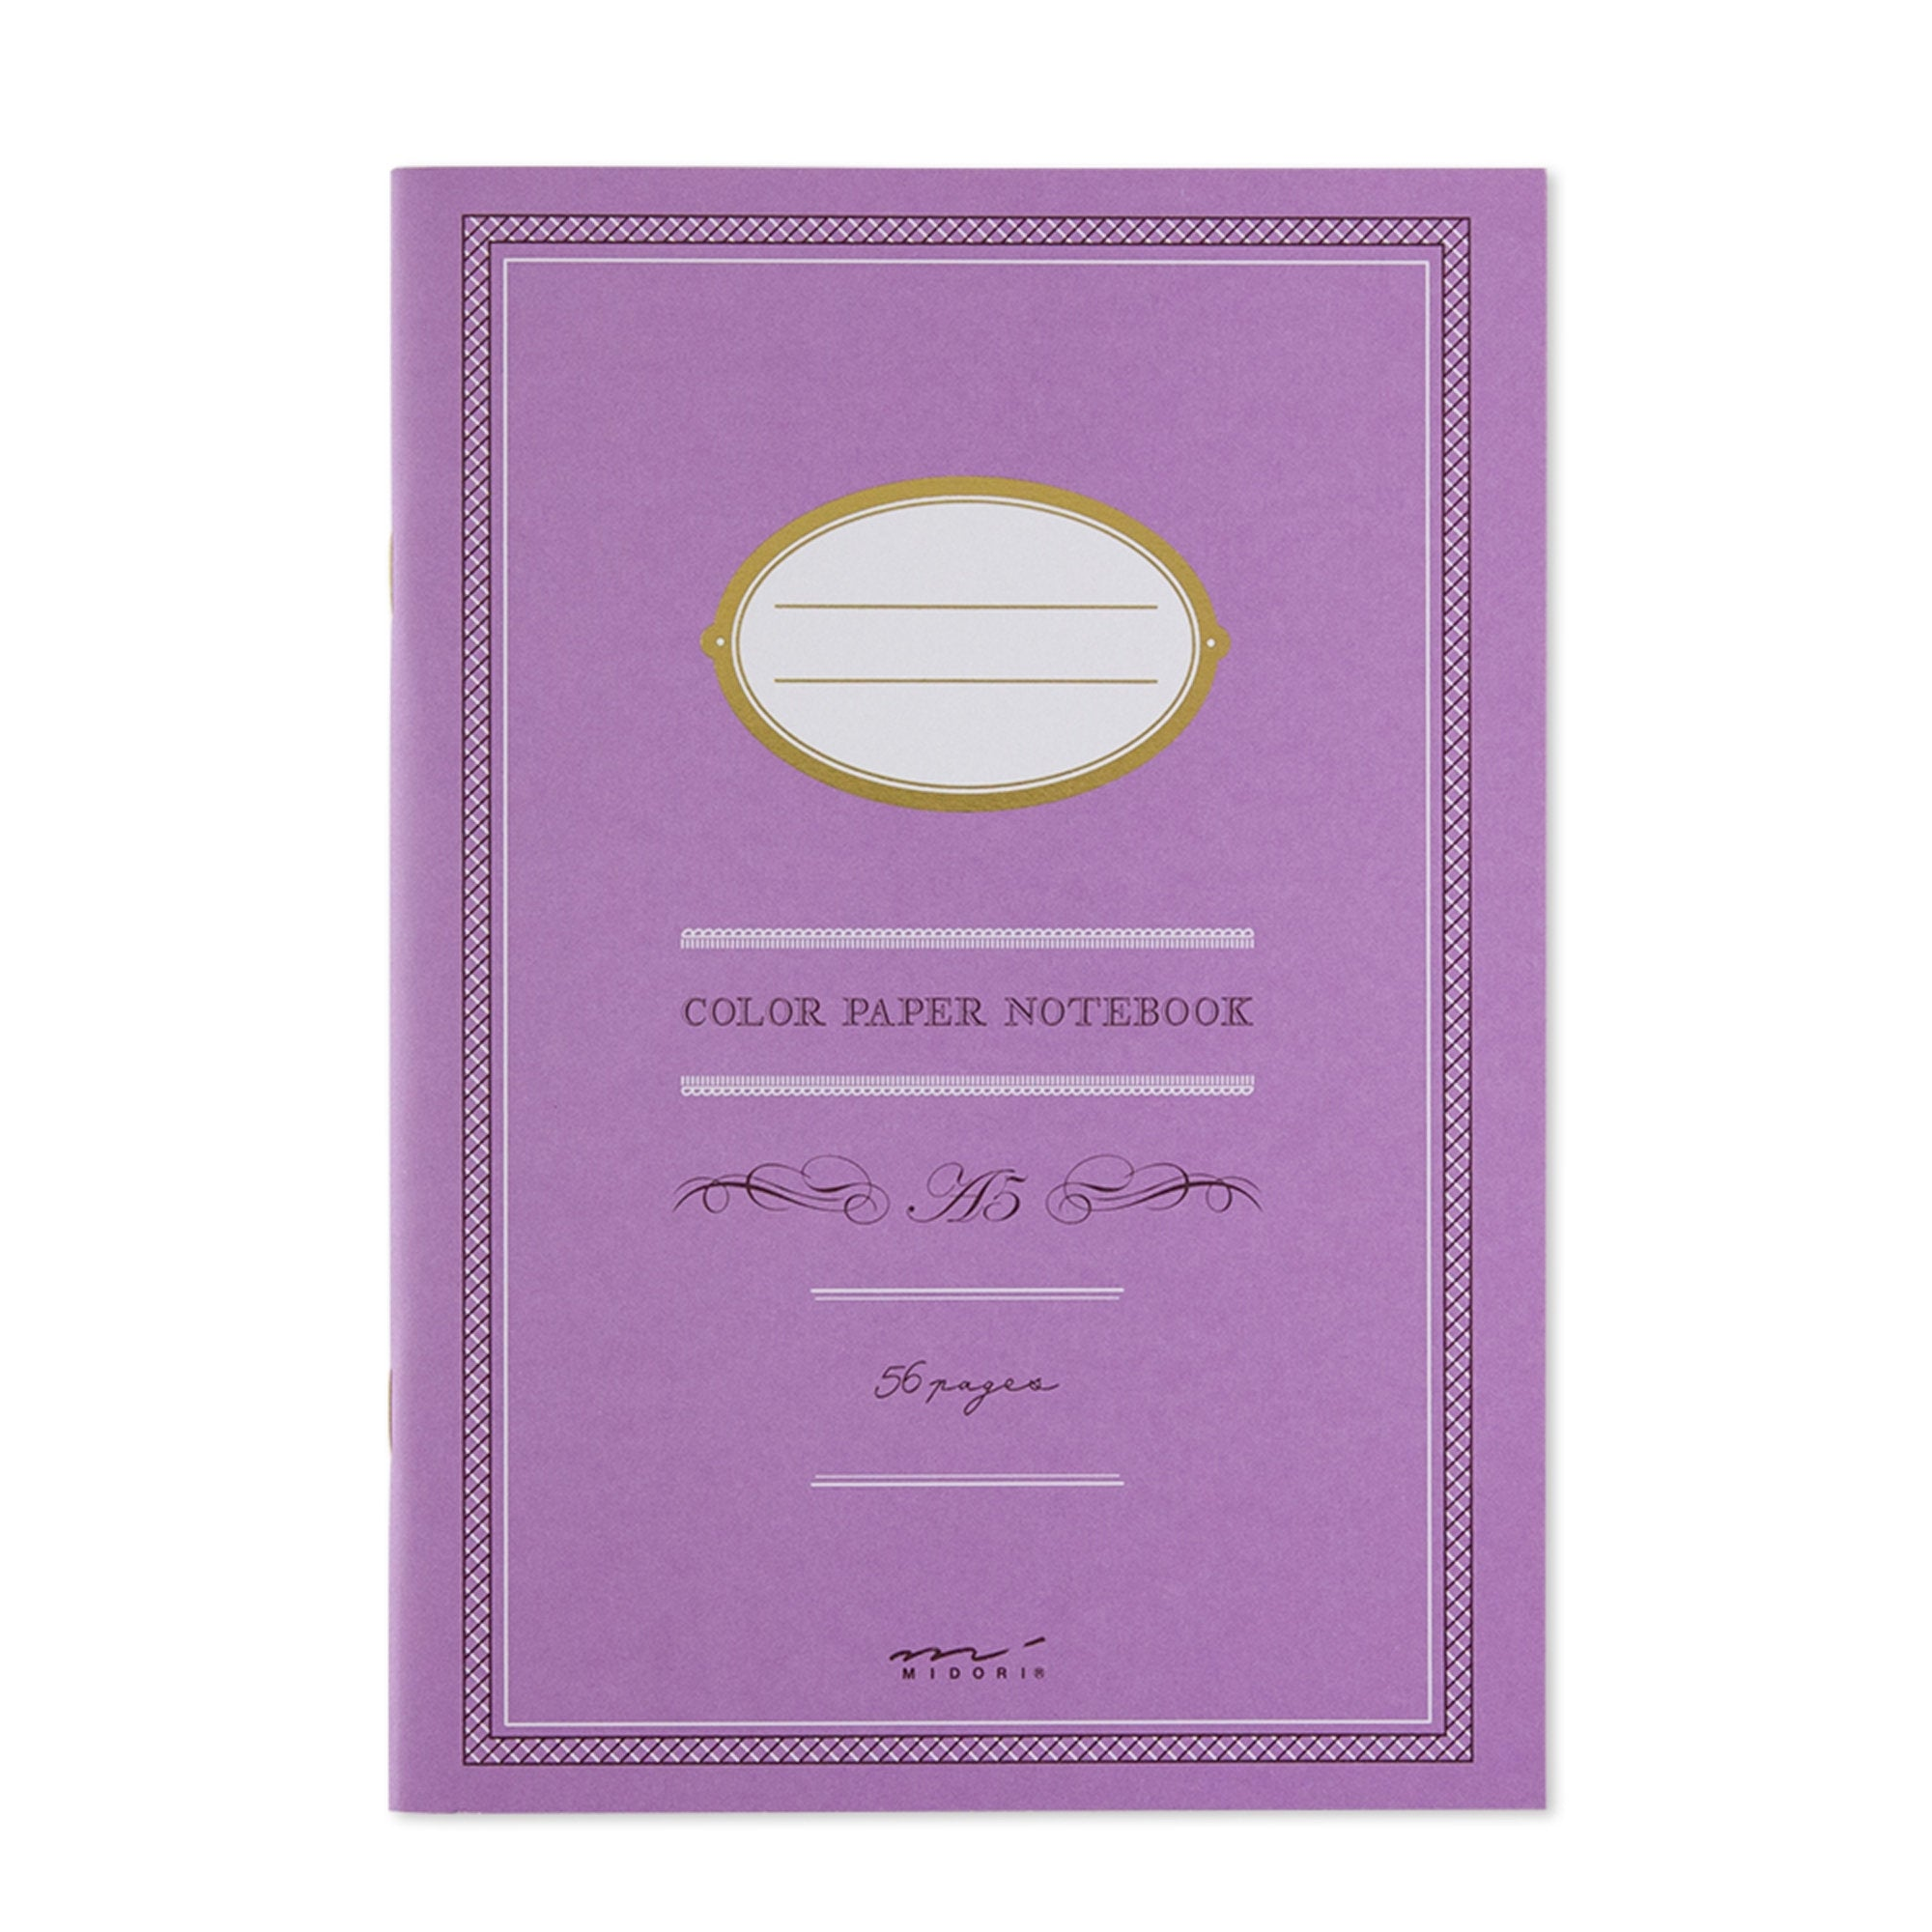 Midori A5 PURPLE COLOR Ruled Lined Notebook | Color Paper 56 Pages - The Stationery Life!